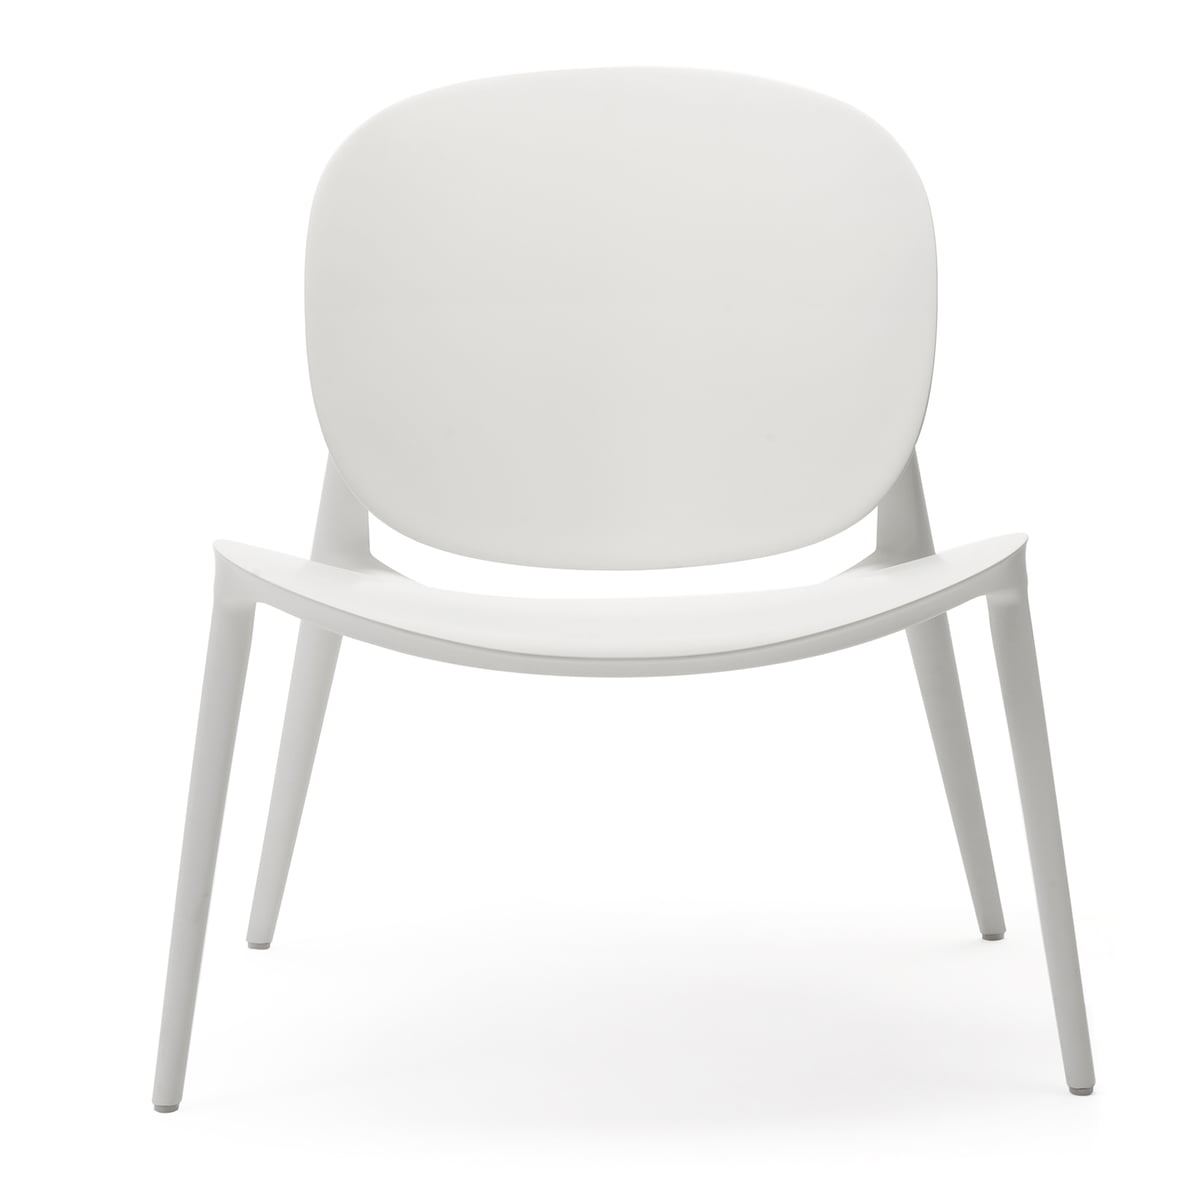 Magnificent Kartell Be Bop Armchair White Matt Inzonedesignstudio Interior Chair Design Inzonedesignstudiocom